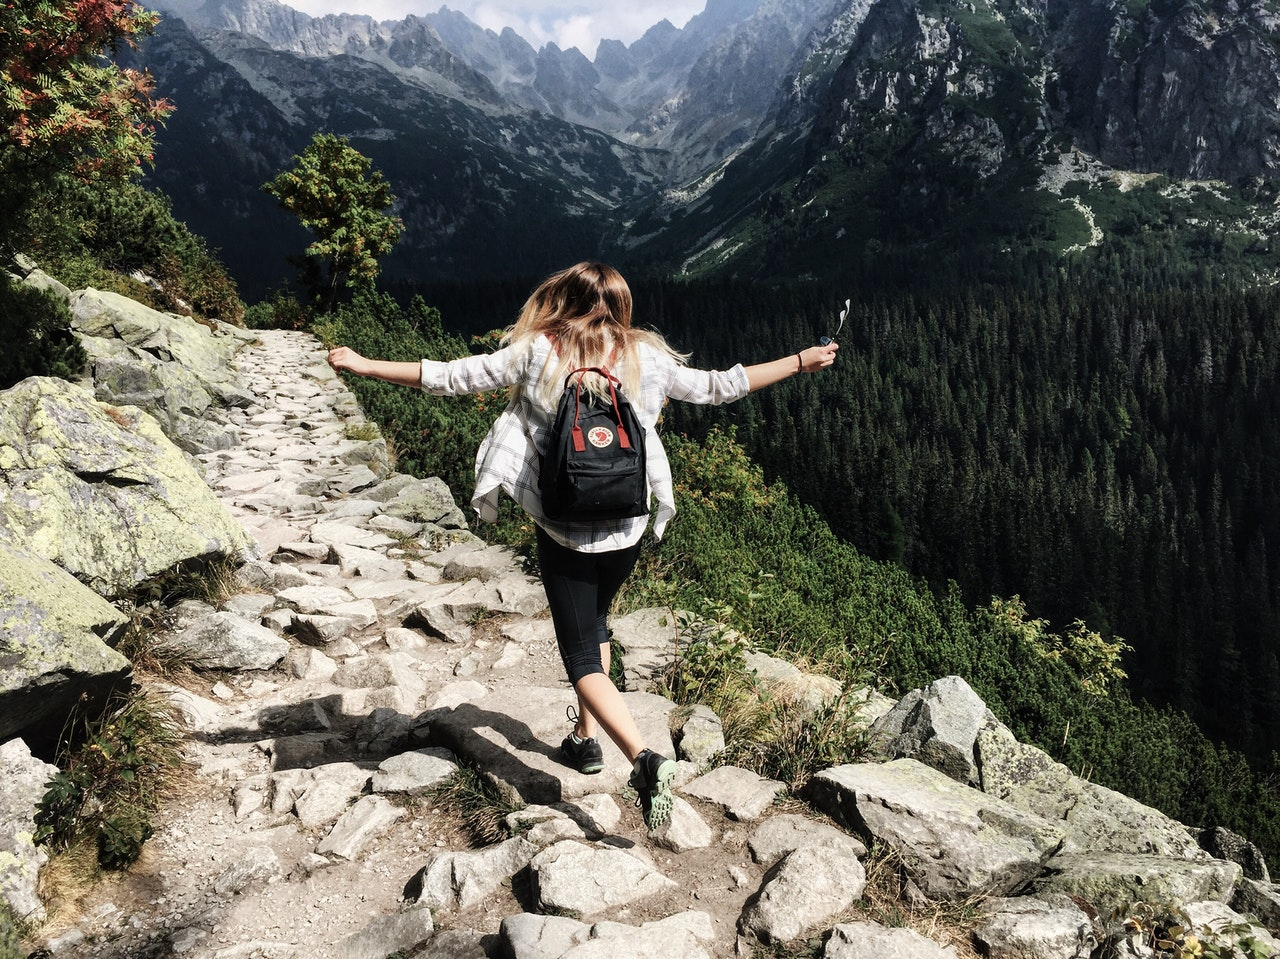 These Are the Top 10 U.S. Cities for Hiking